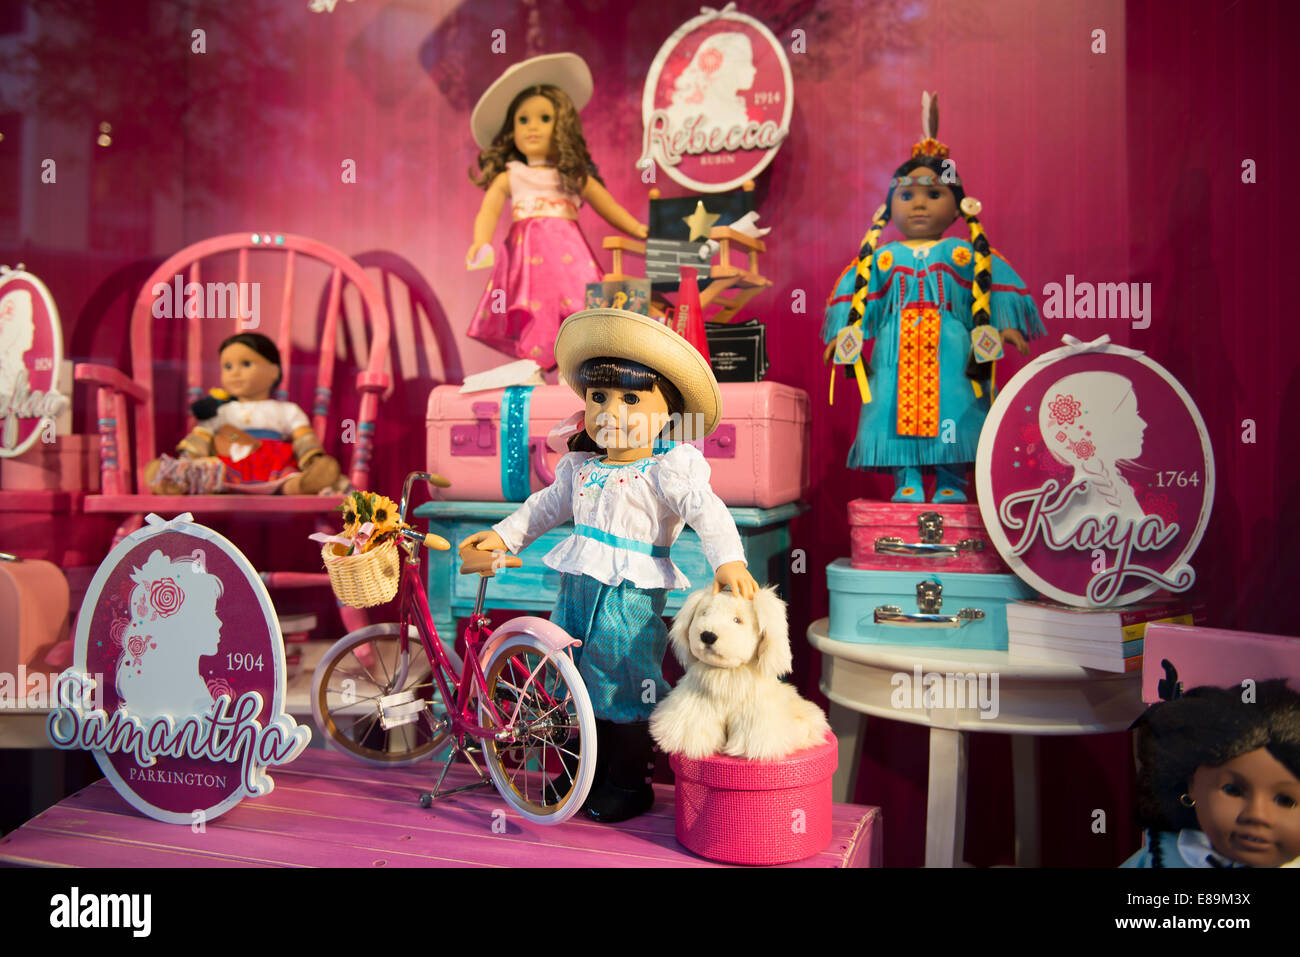 Dolls, American Girl Dolls I Shop Window, American Girl-9597